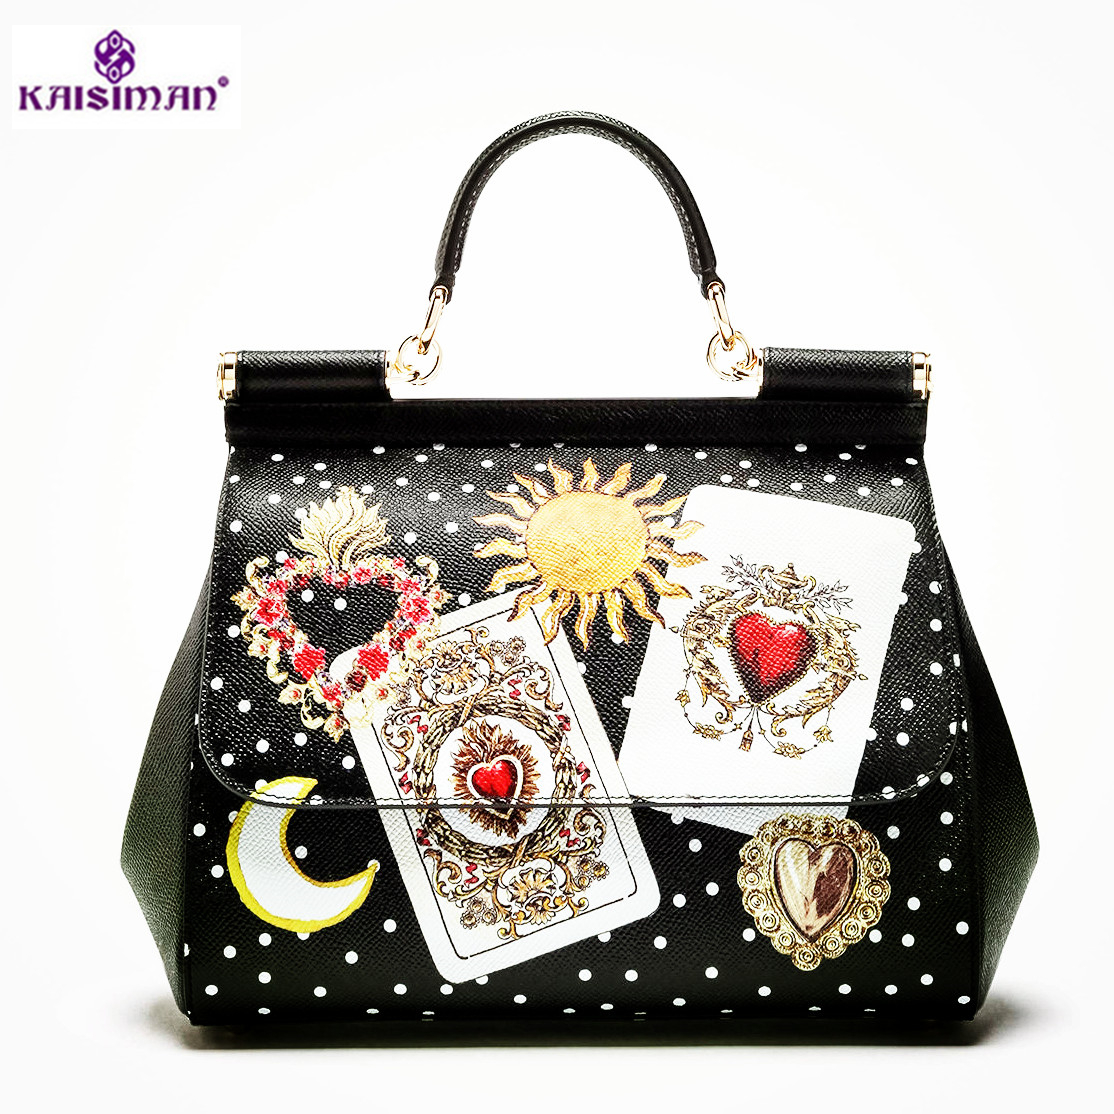 Luxury Italy Brand Sicily Ethnic Bag Genuine Leather Women Casual Tote Platinum Bags Star Moon Print Lady Shoulder Messenger Bag 2018 luxury brand trapeze platinum bags designer women cow leather shoulder bag scrub genuine leather messenger bag casual tote